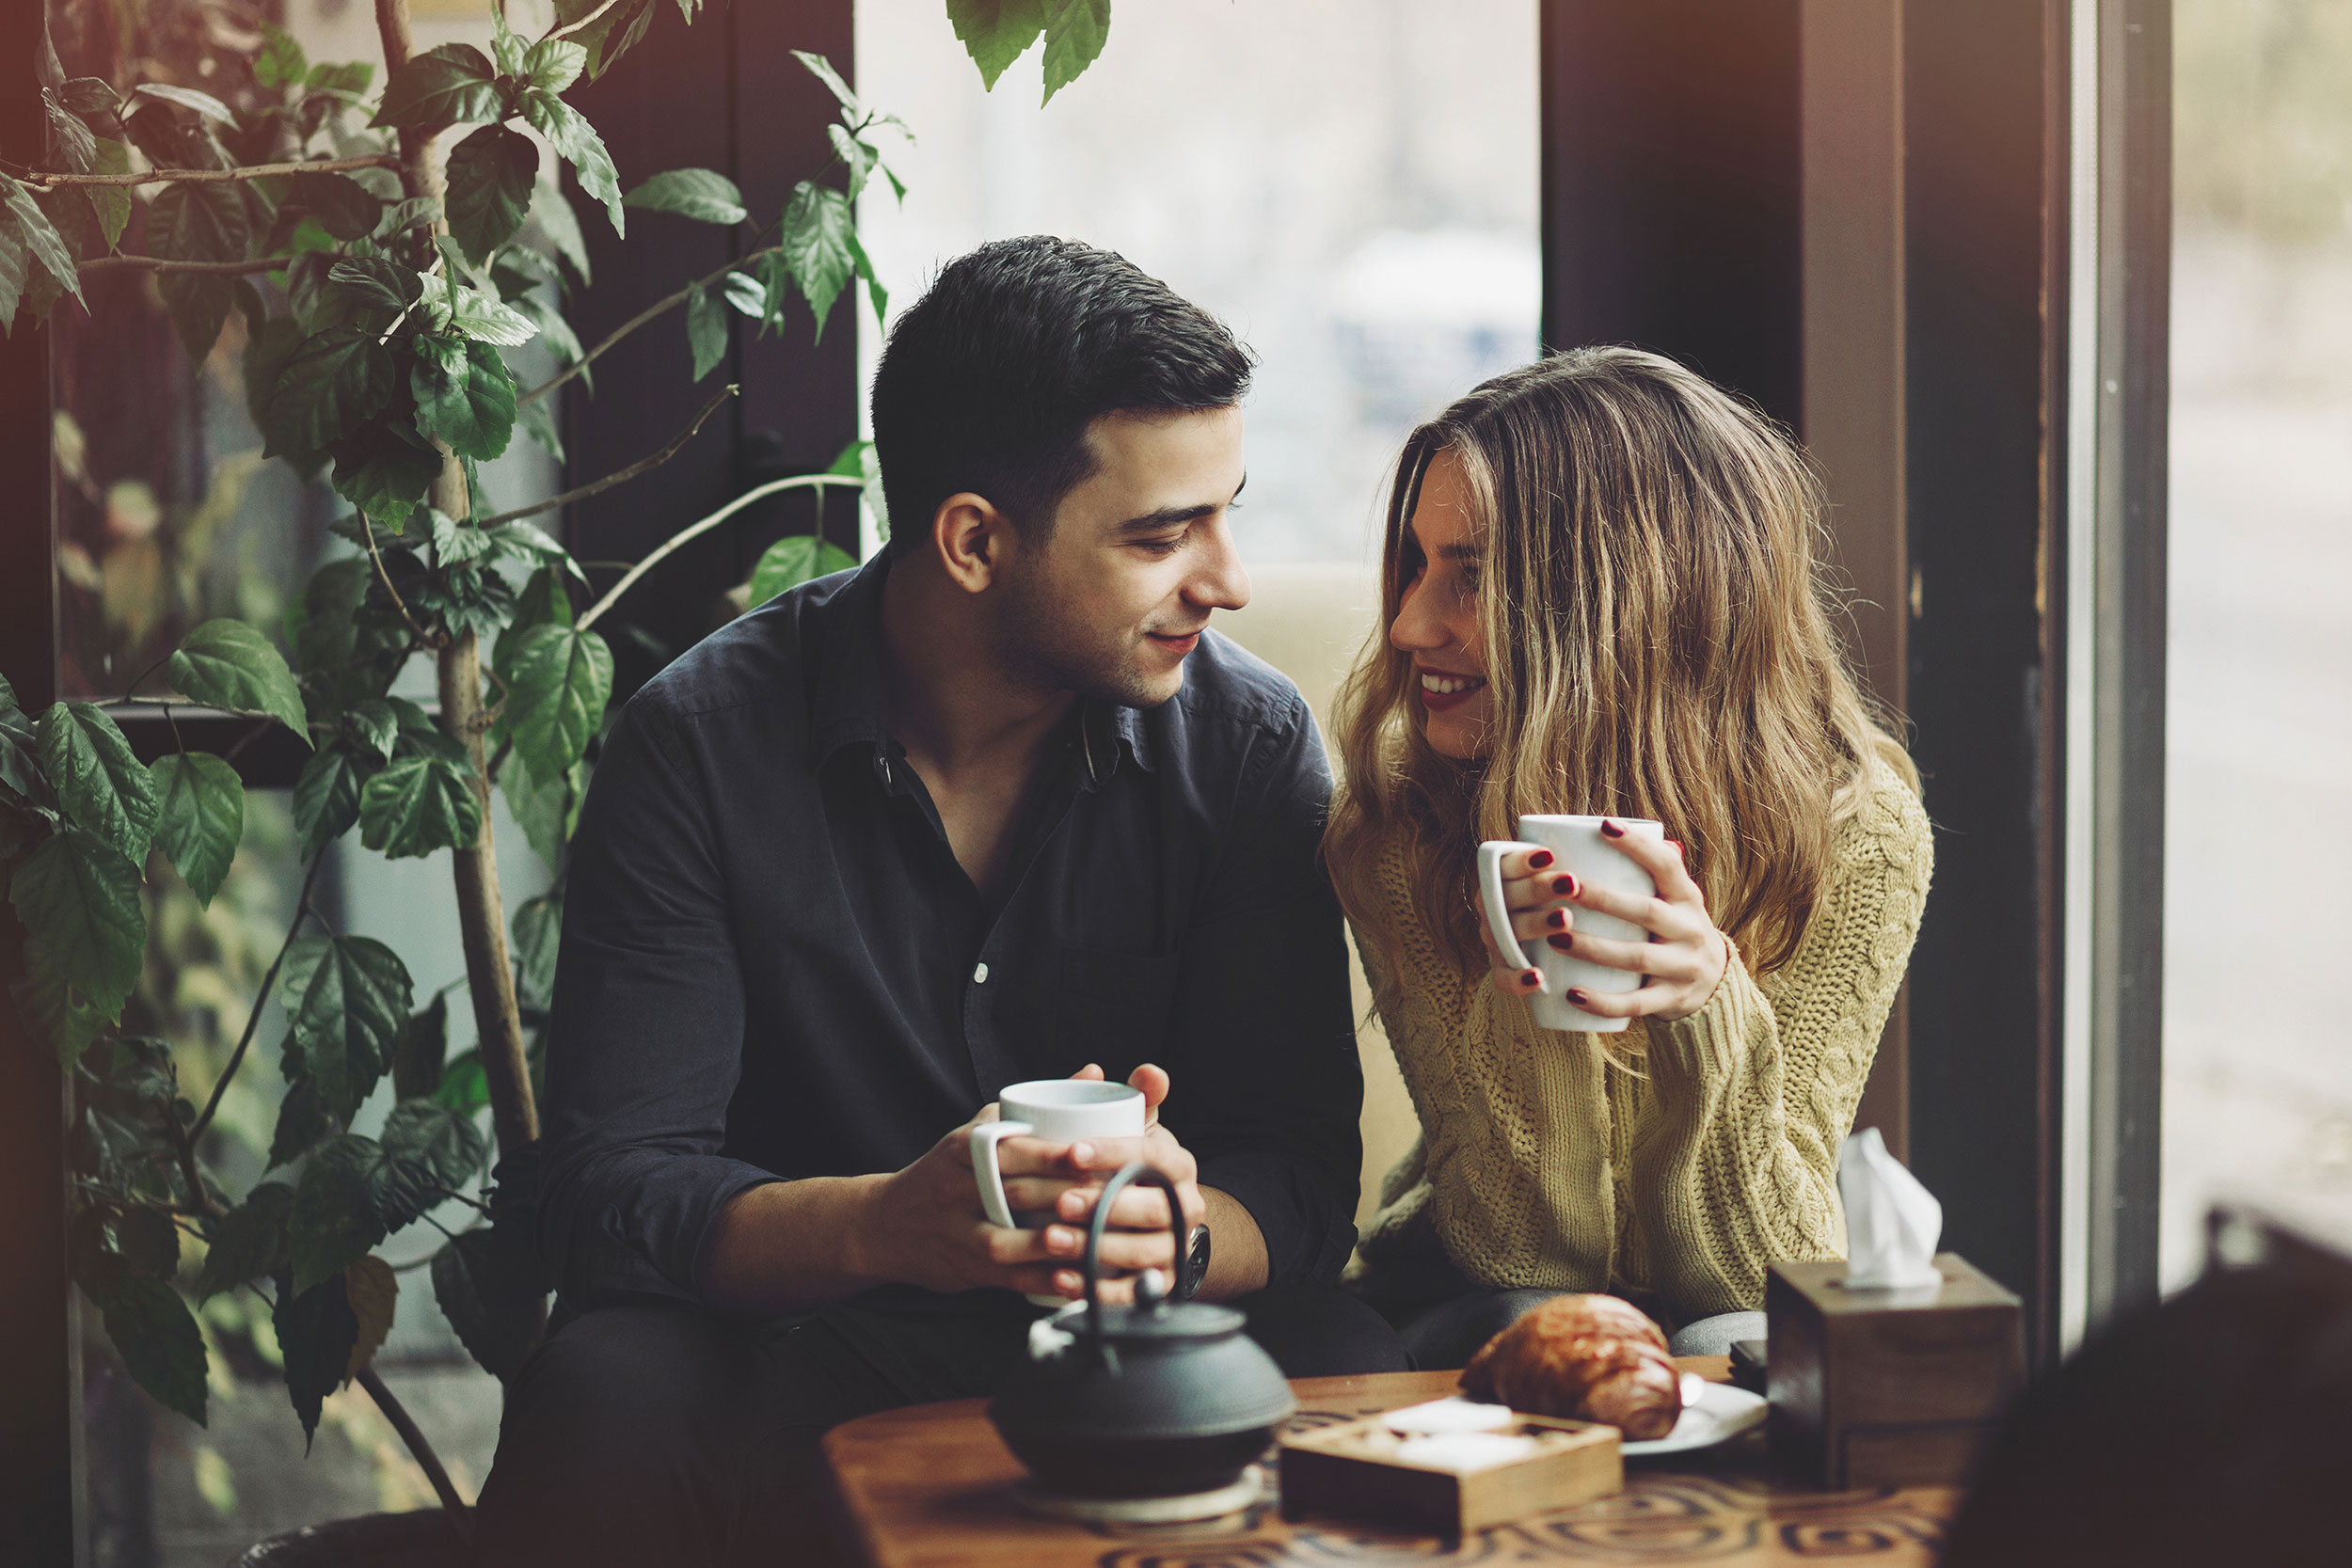 How to Find the Best International Online Dating Sites